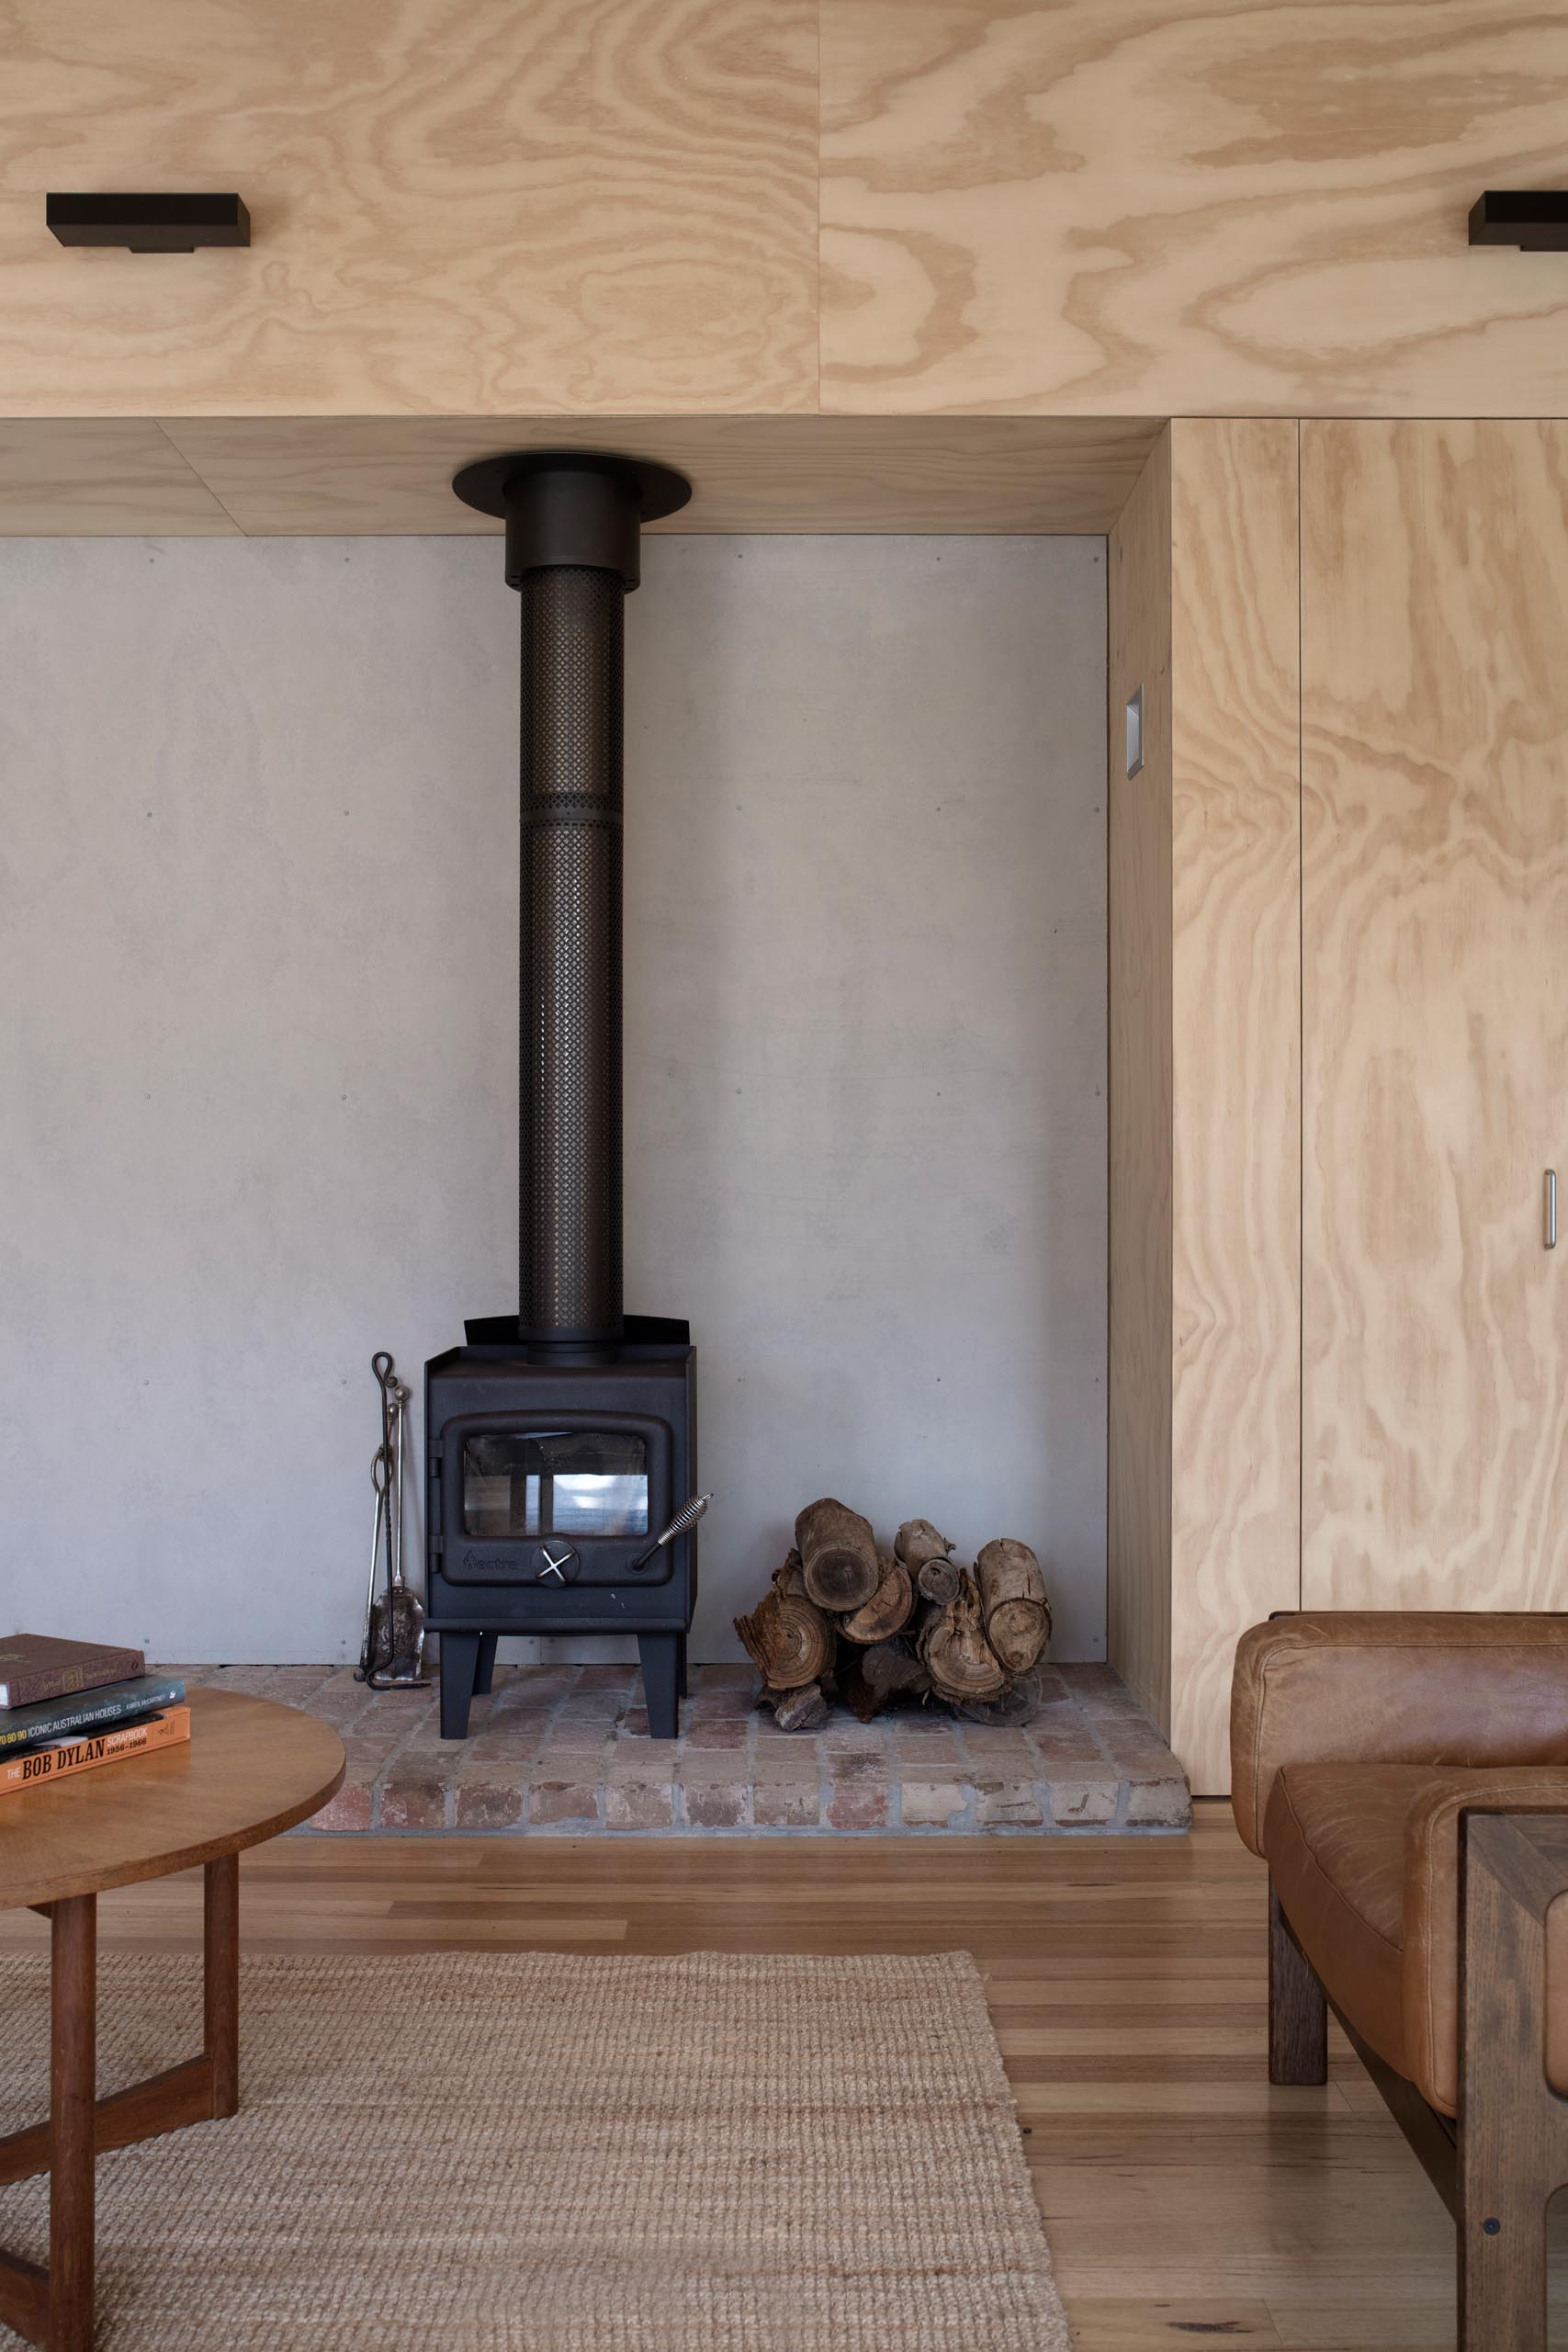 Salvaged bricks were reused in the hearth of this fireplace, which has a matte black finish to match the ceiling fan.